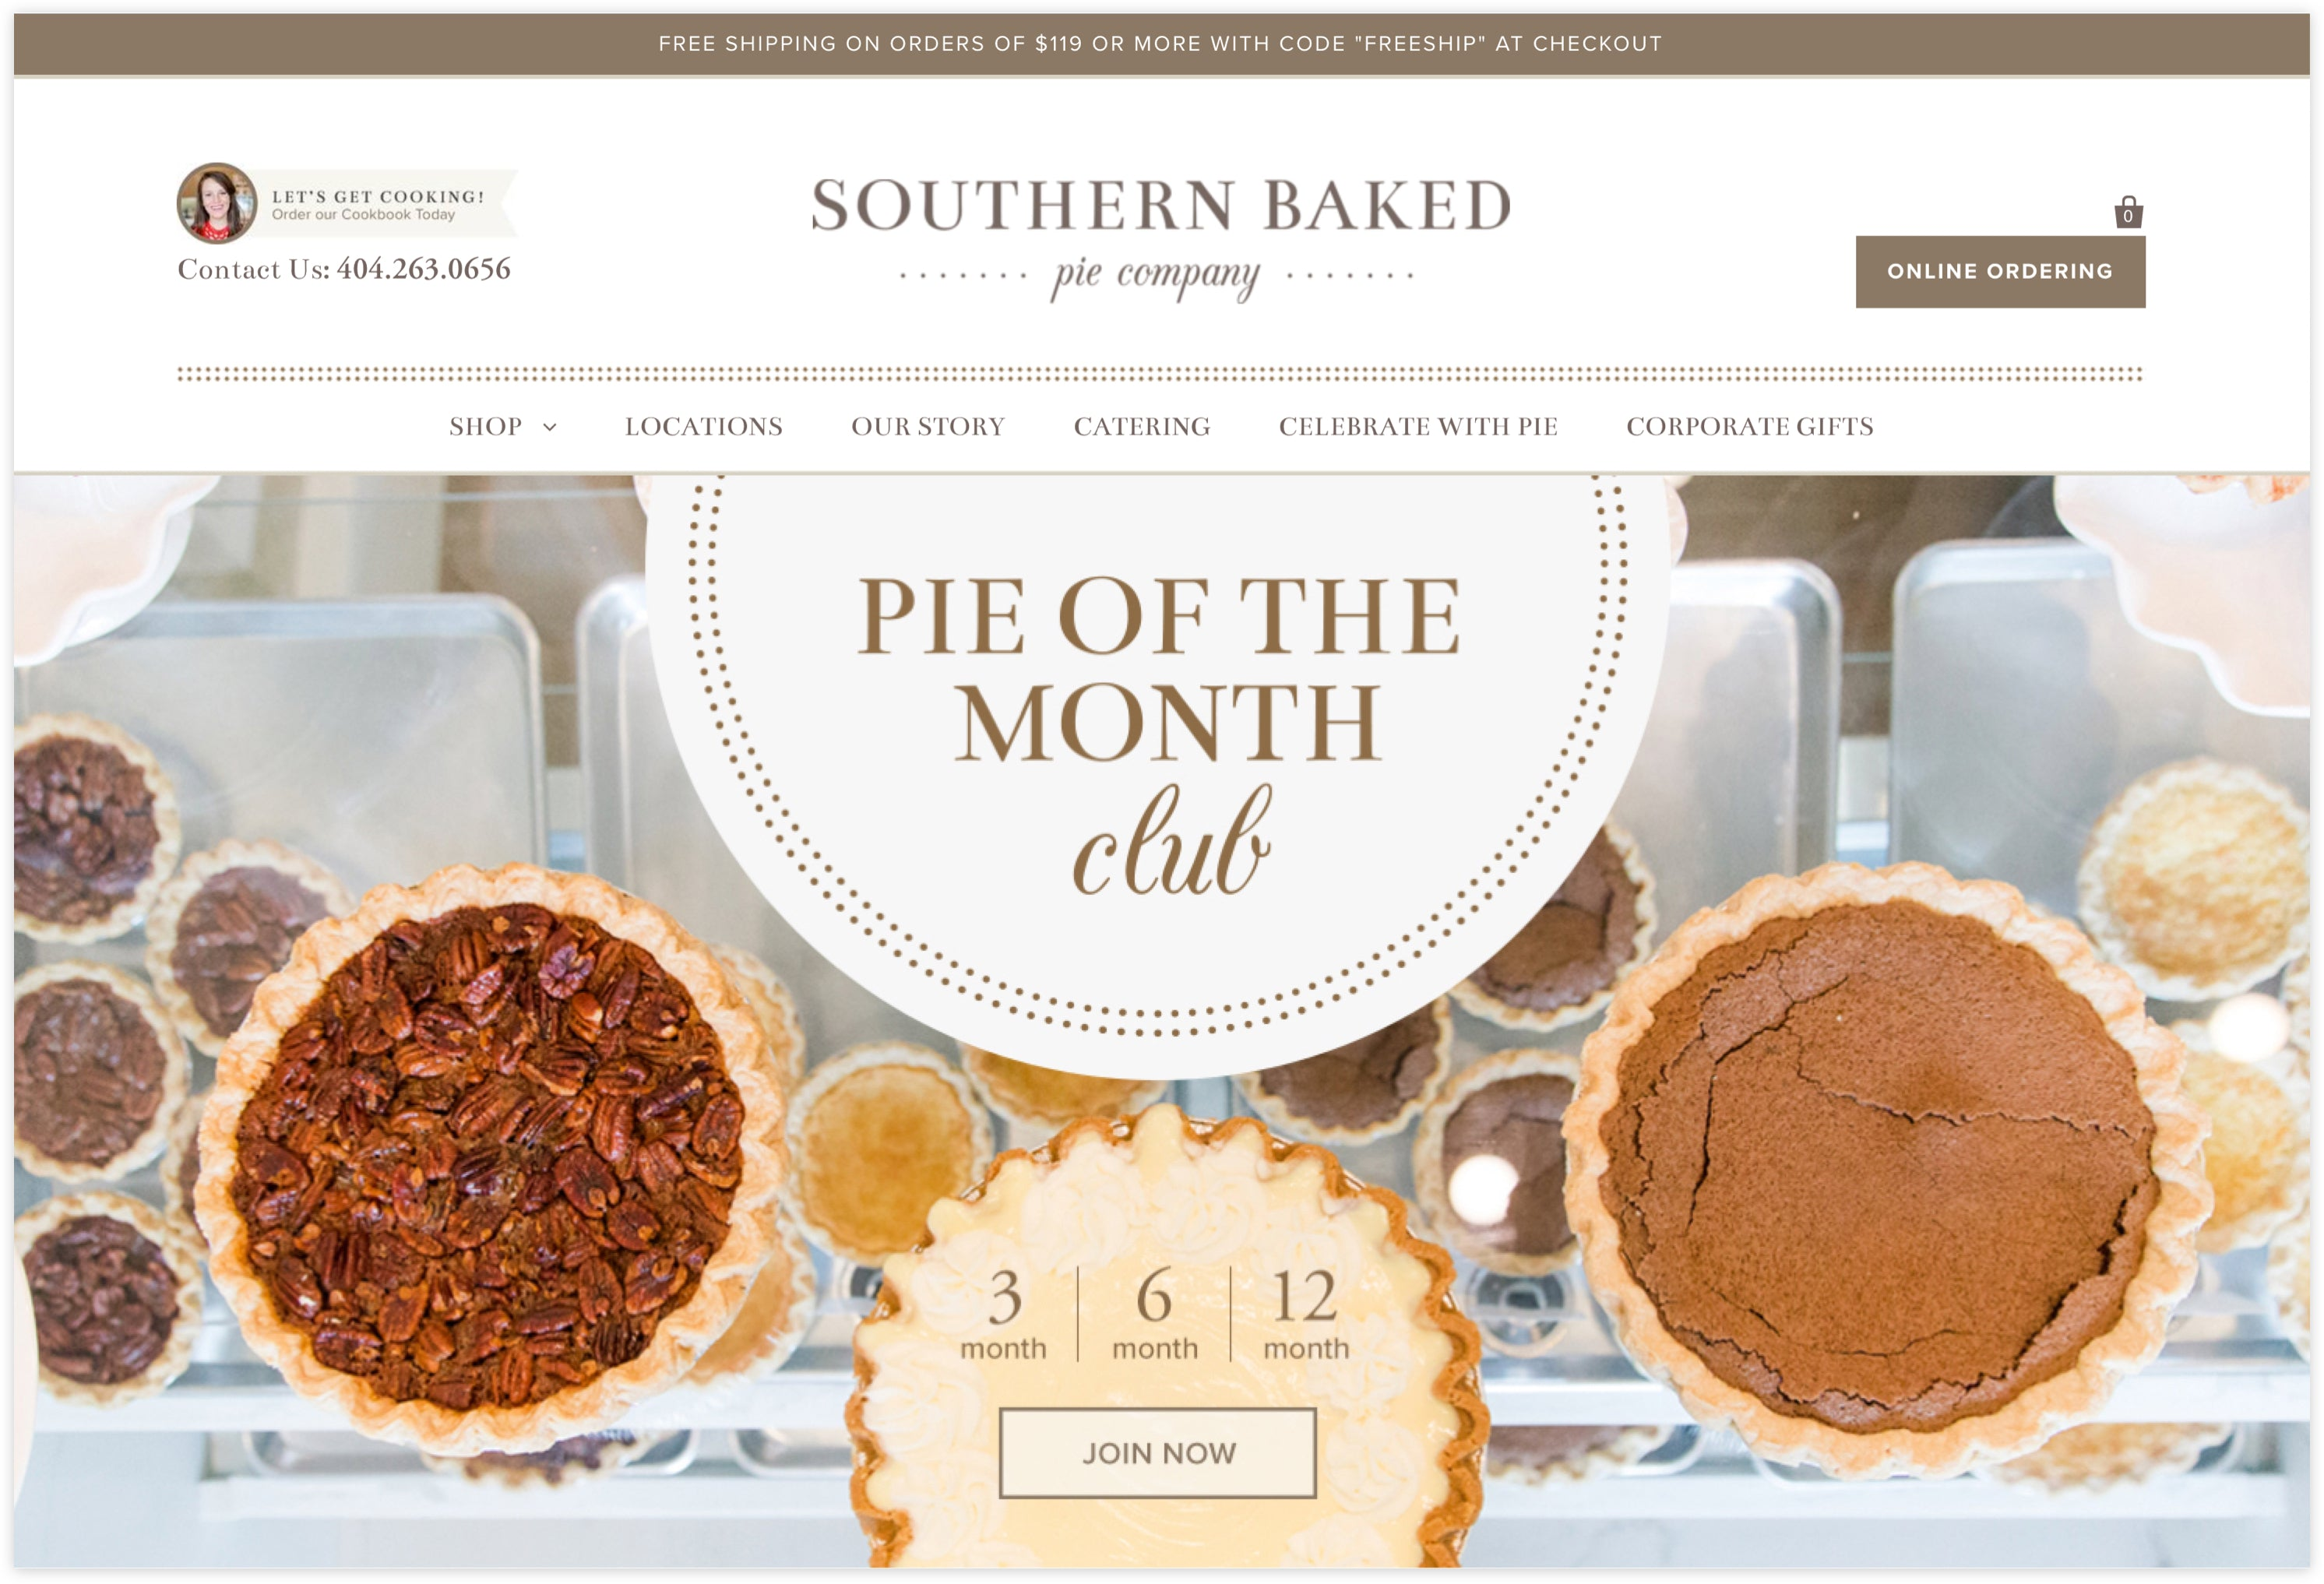 Southern Baked Pie Homepage, Iconography and subscription service, sweet and southern